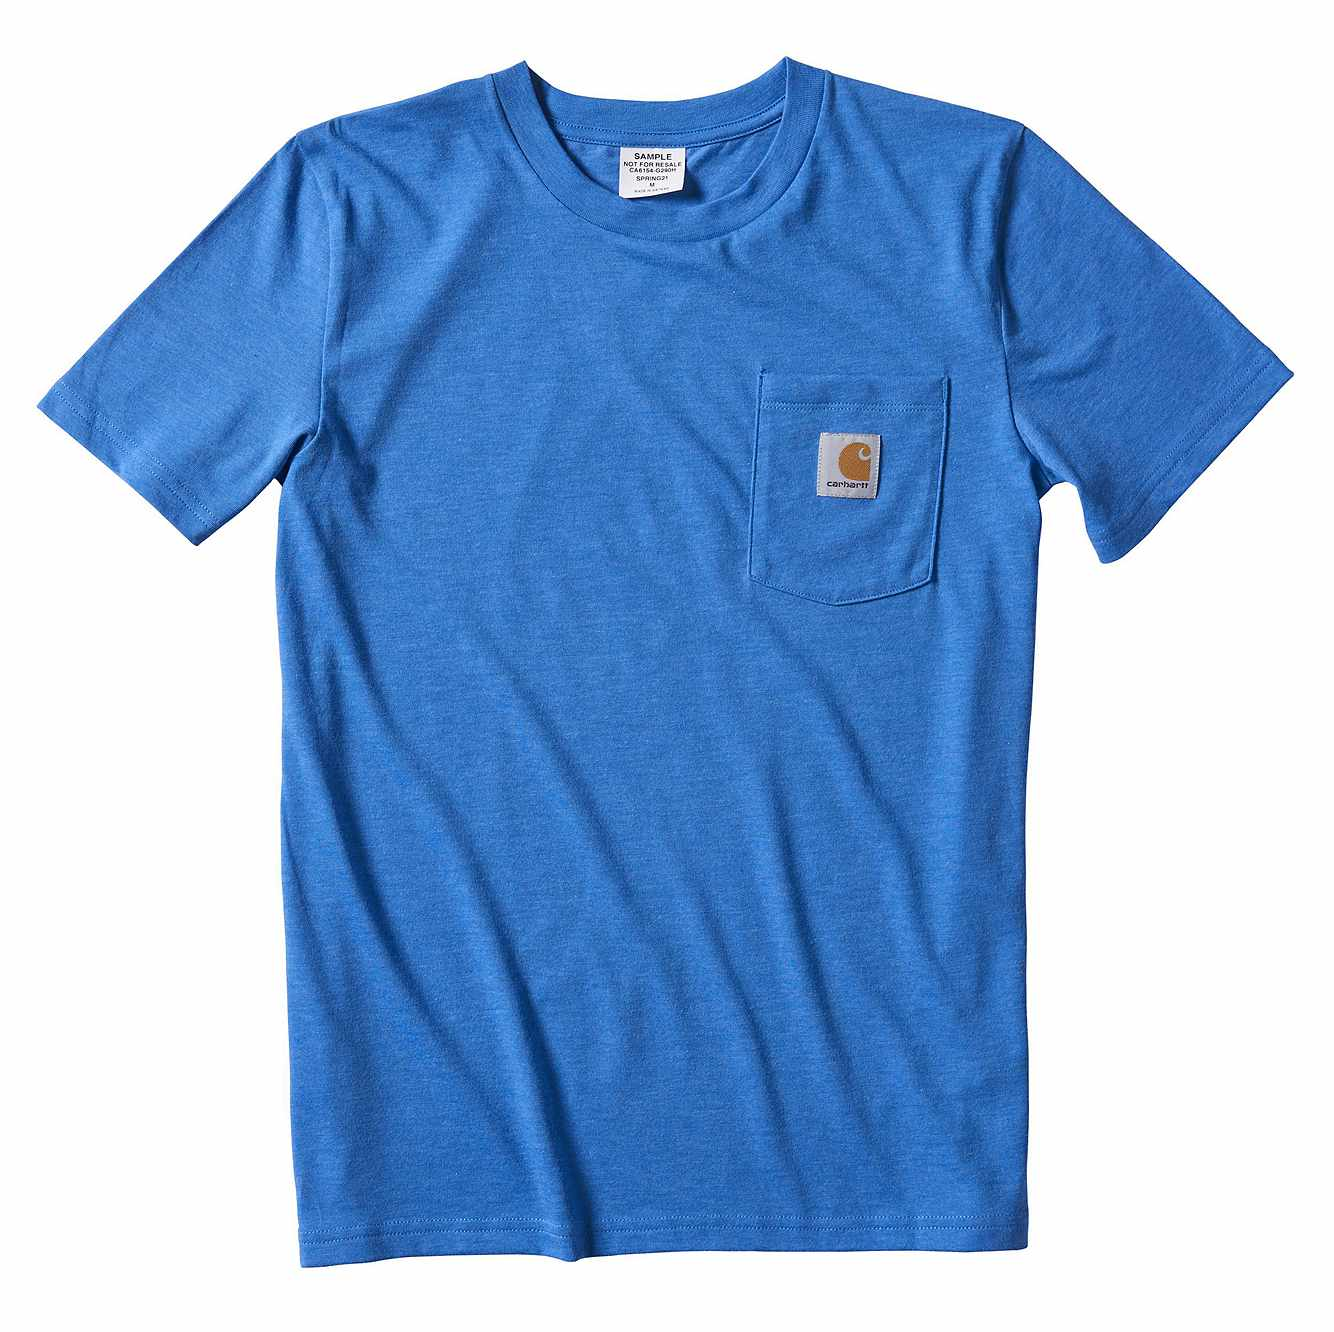 Picture of Kids Loose Fit Heavyweight Short-Sleeve Pocket T-Shirt in Palace Blue